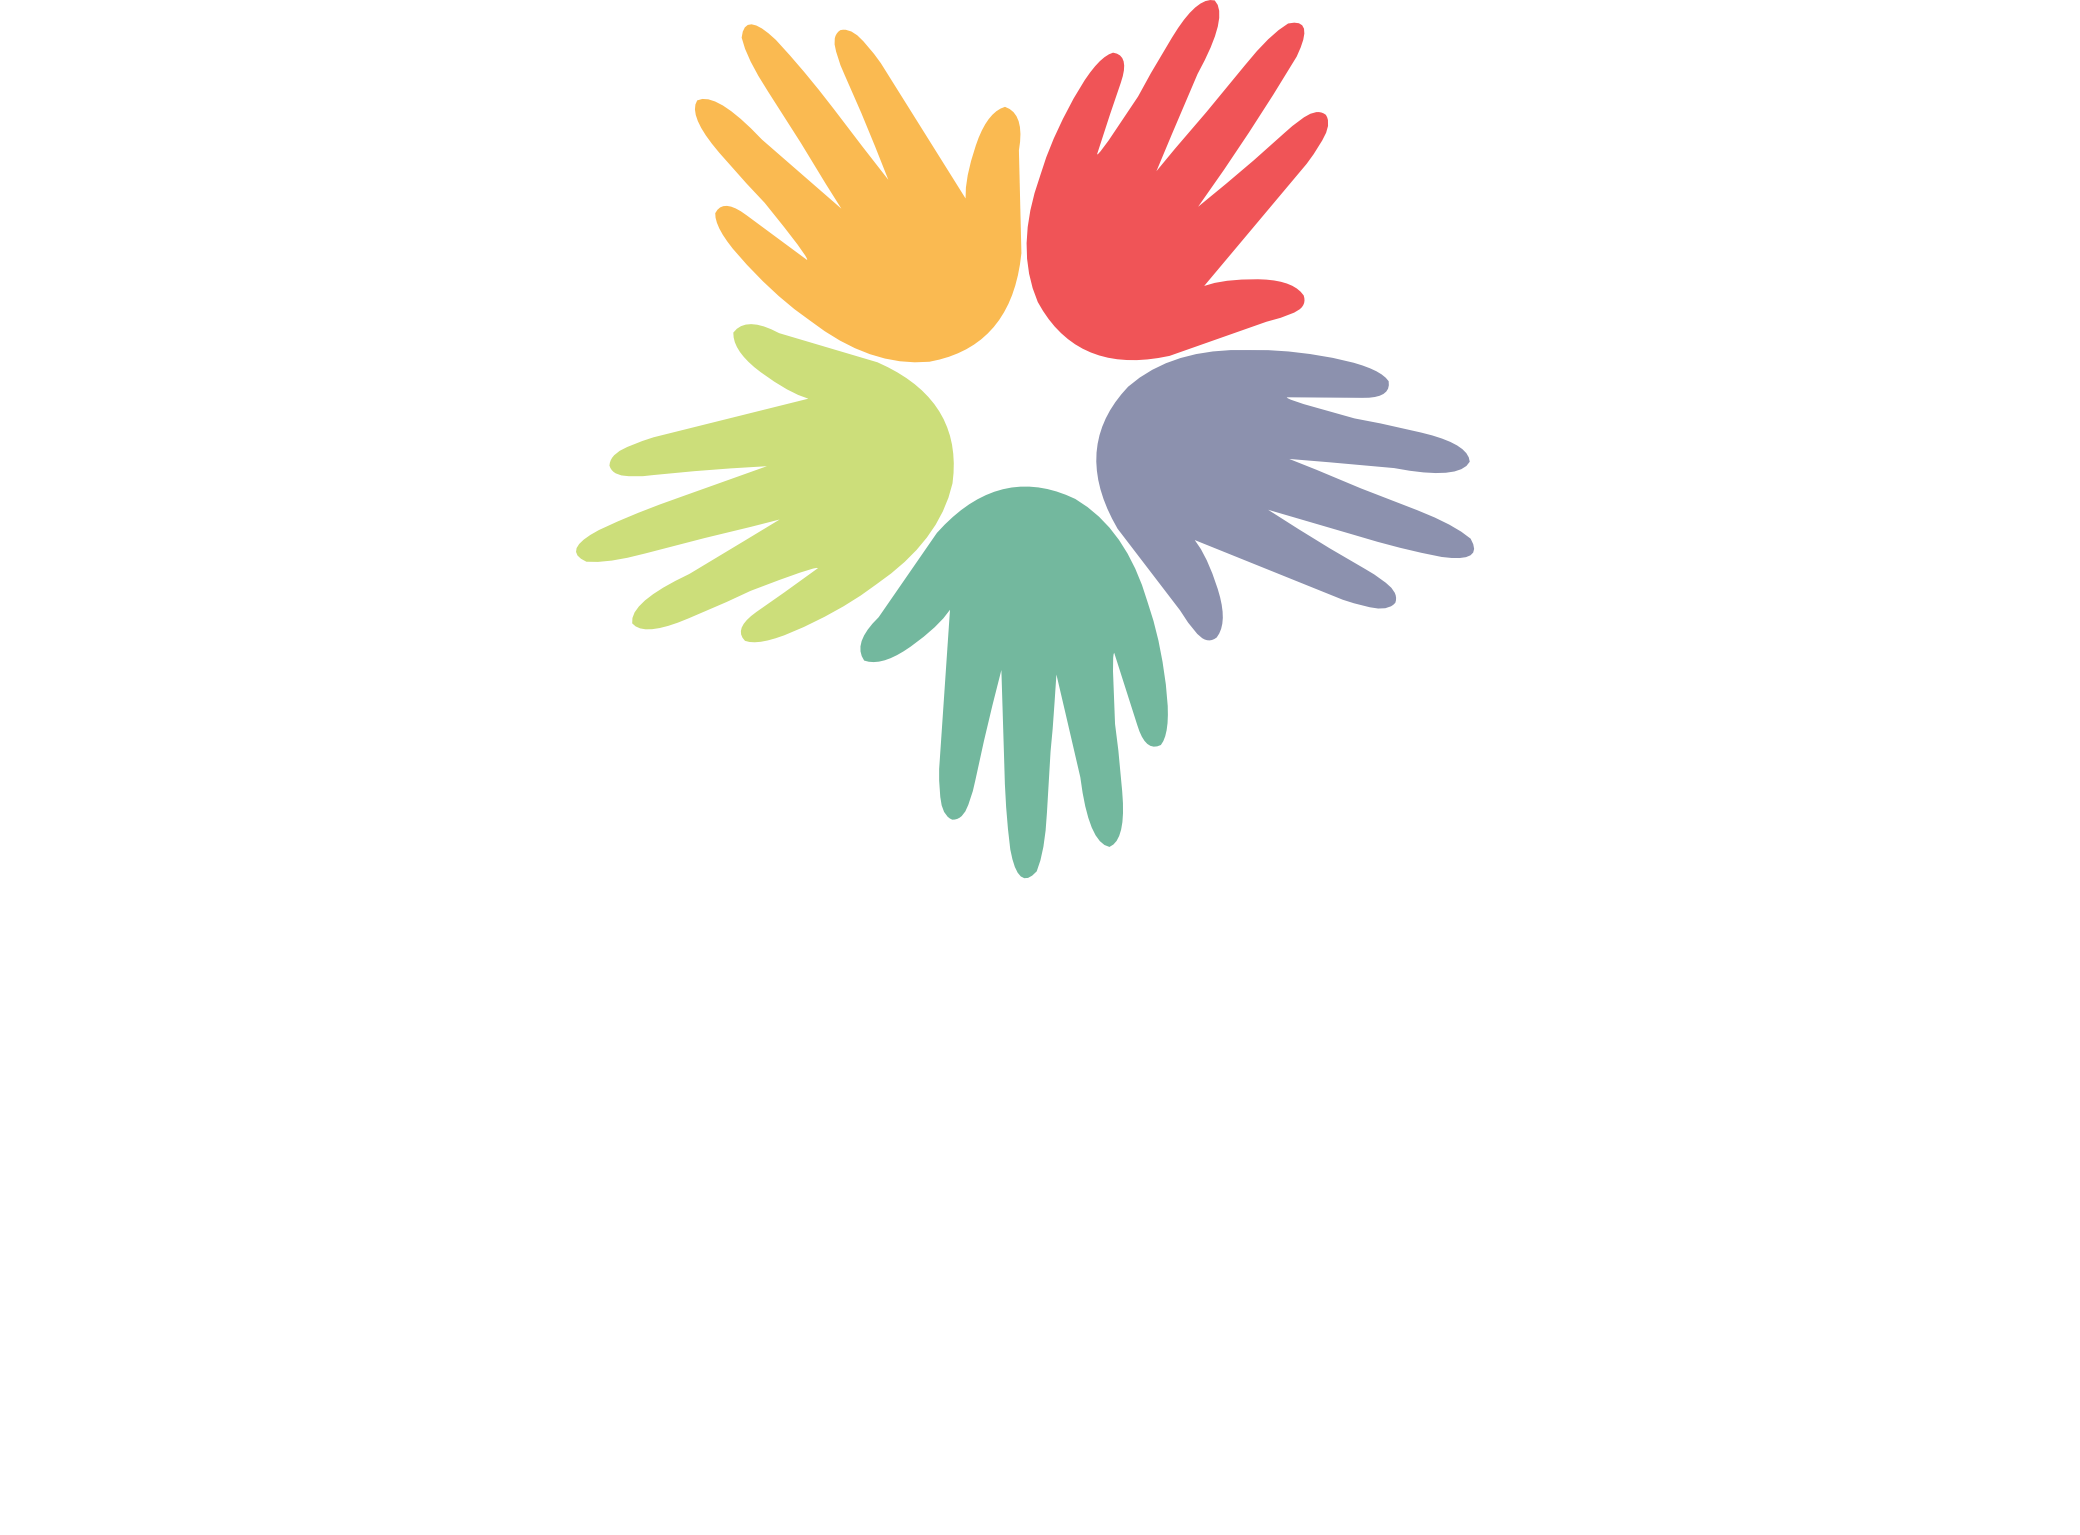 Andrea Anilonti Business & Sport Coach